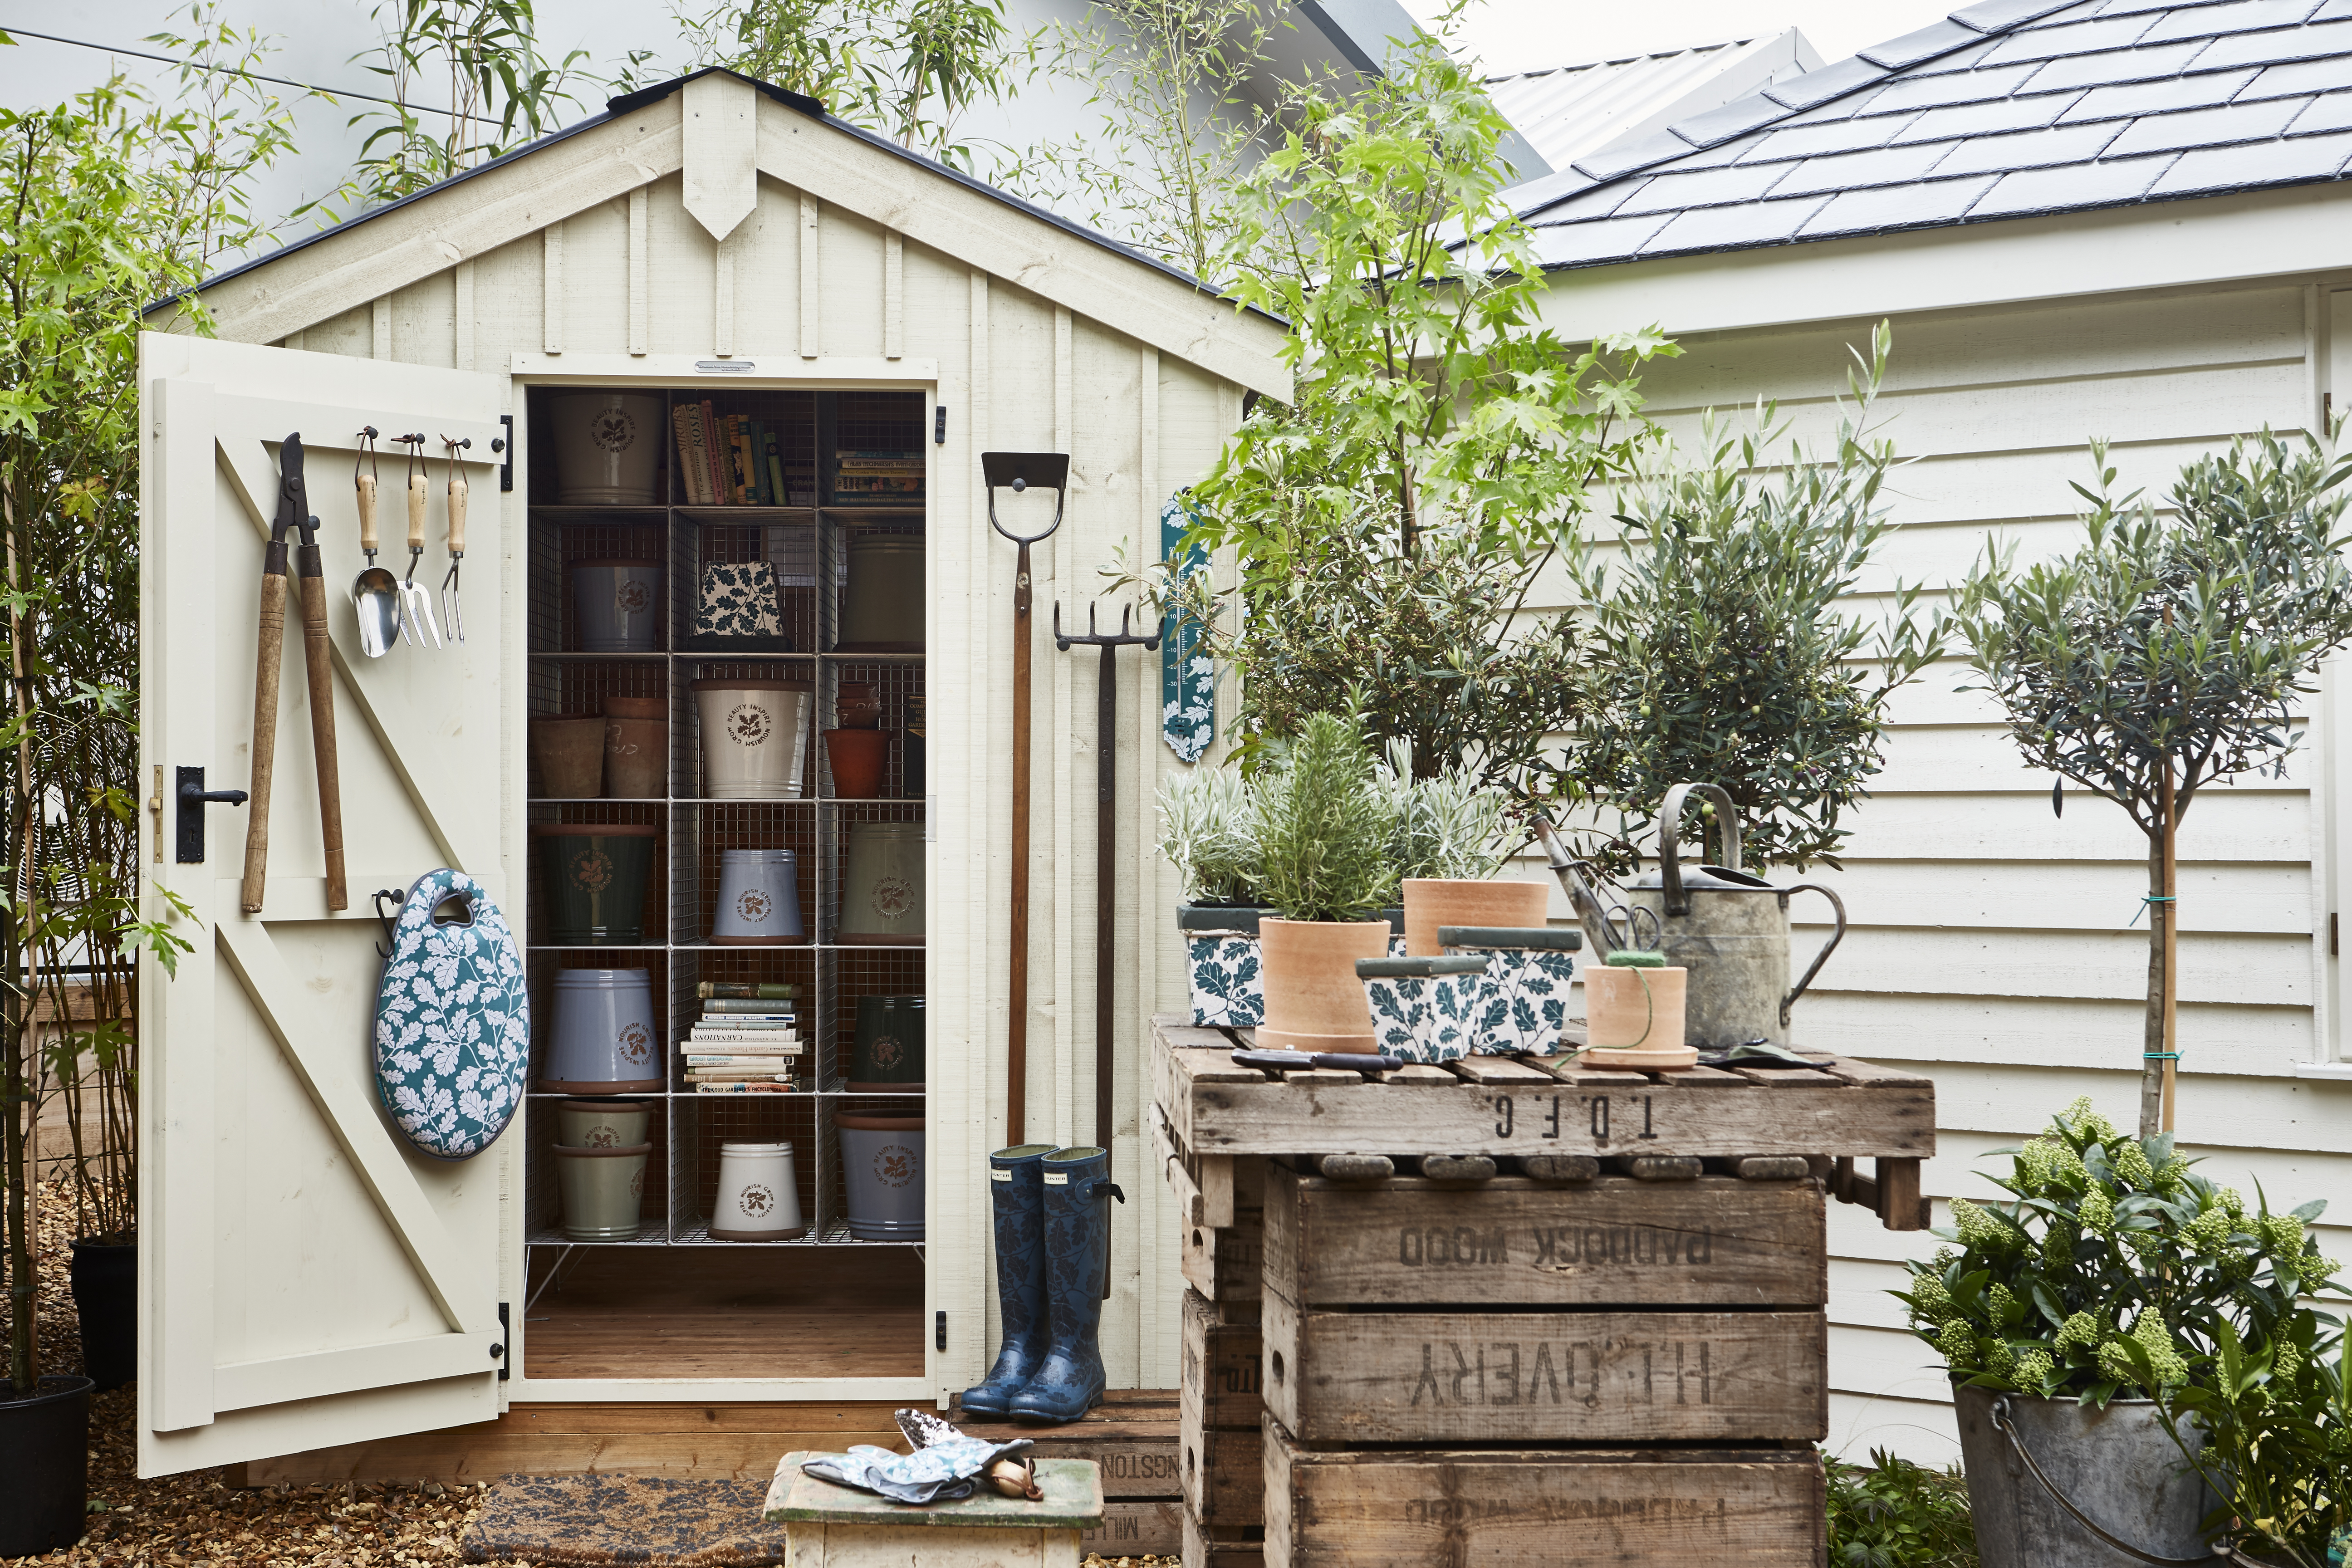 14 Shed Storage Ideas That Ll Keep Your, How To Hang Things In A Garden Shed